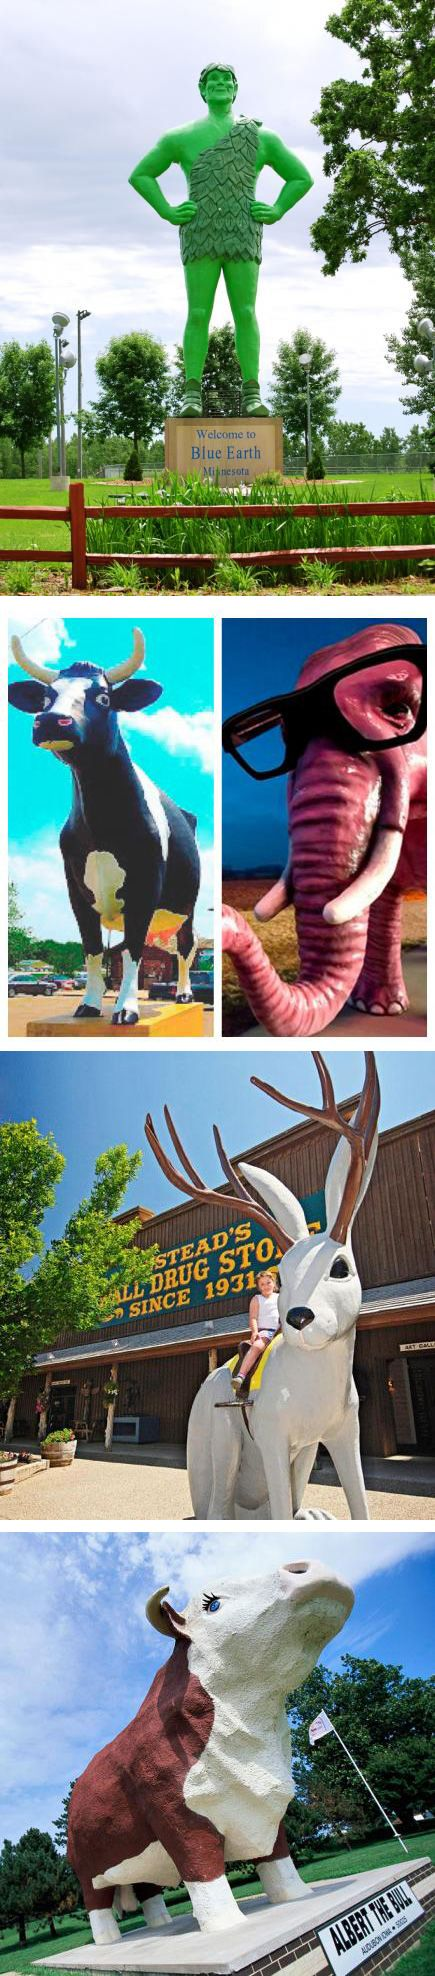 You've GOT to see these Midwest roadside icons! Find out more: http://www.midwestliving.com/travel/around-the-region/midwest-interstate-attractions-worth-a-stop/